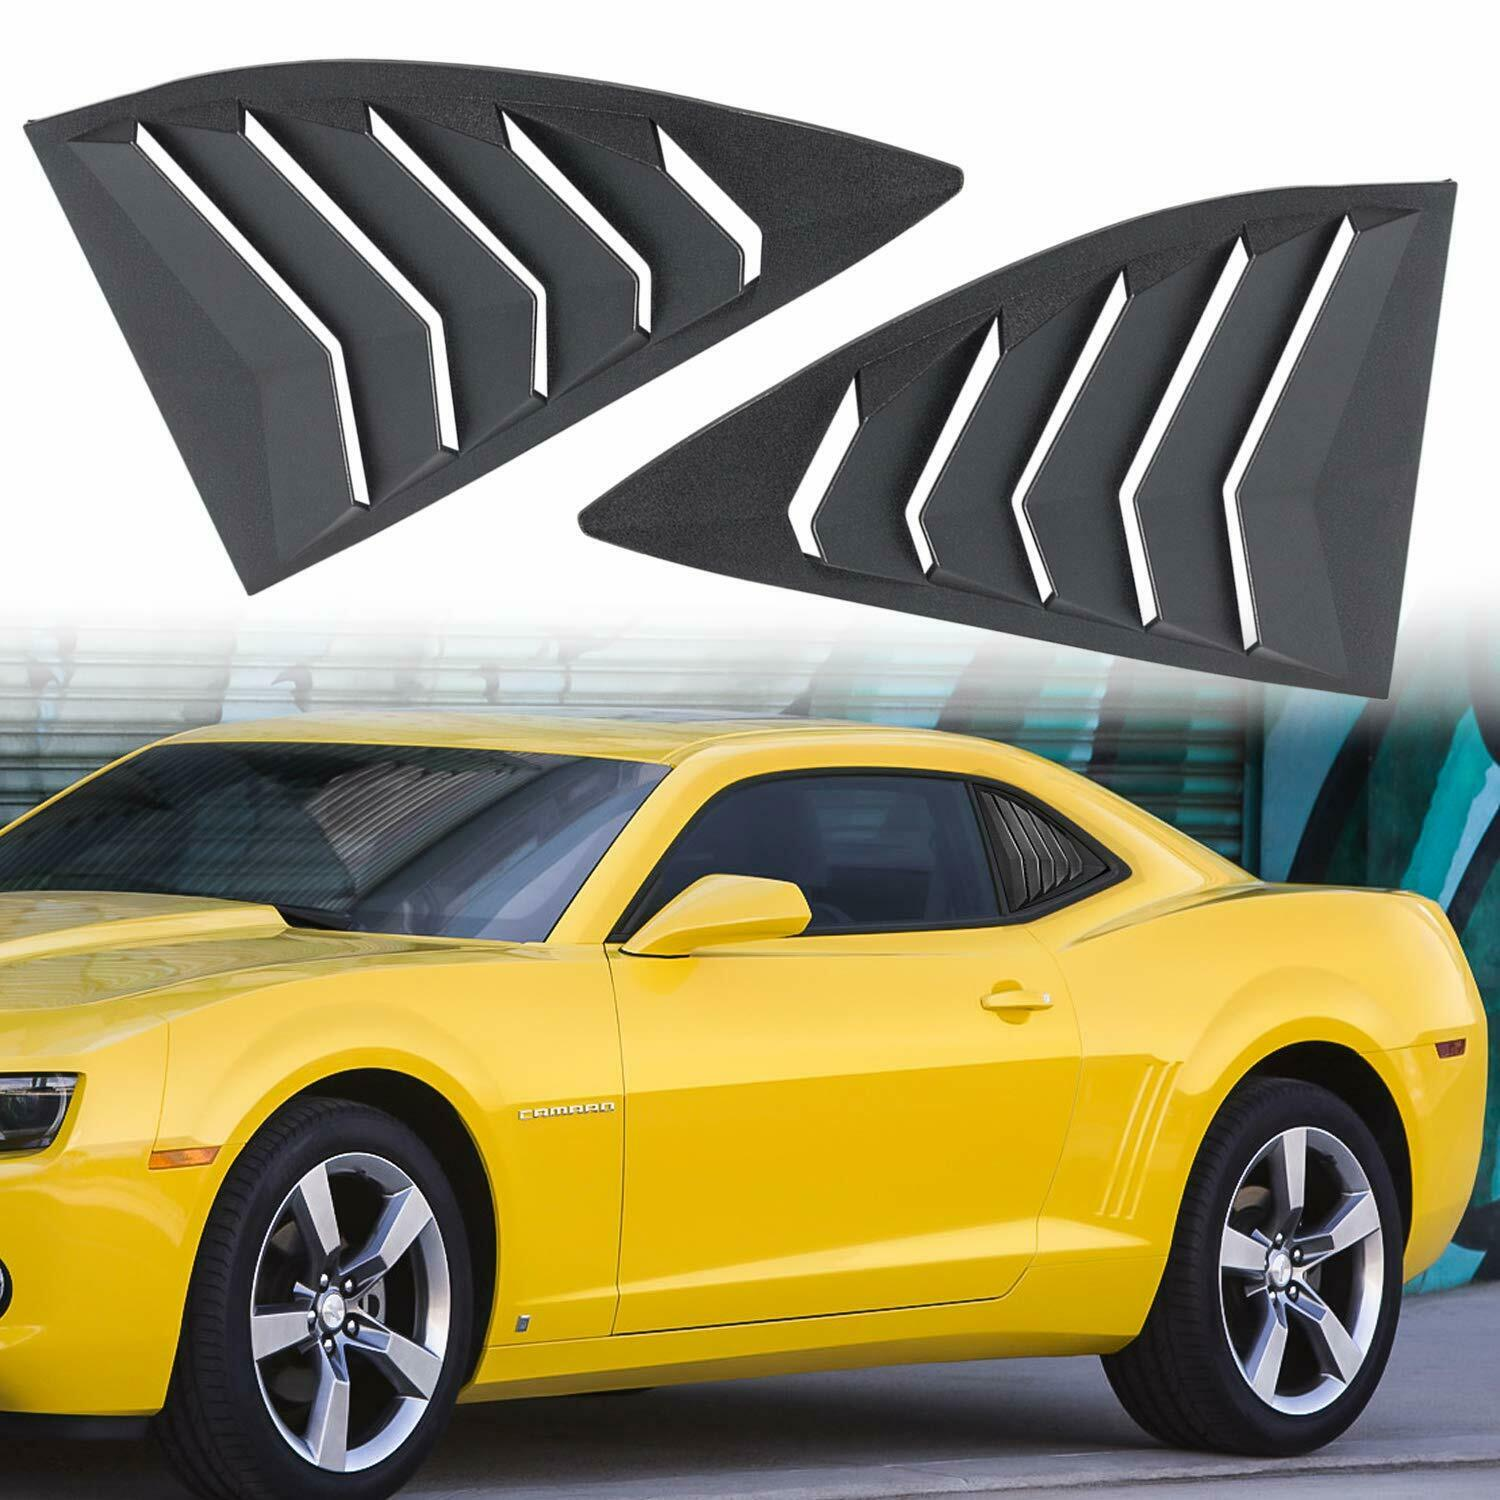 Chuang Qian Side Window Scoop Louvers ABS Window Visor Cover Sun Rain Shade Vent for 2010-2015 Chevrolet Camaro LS LT RS SS